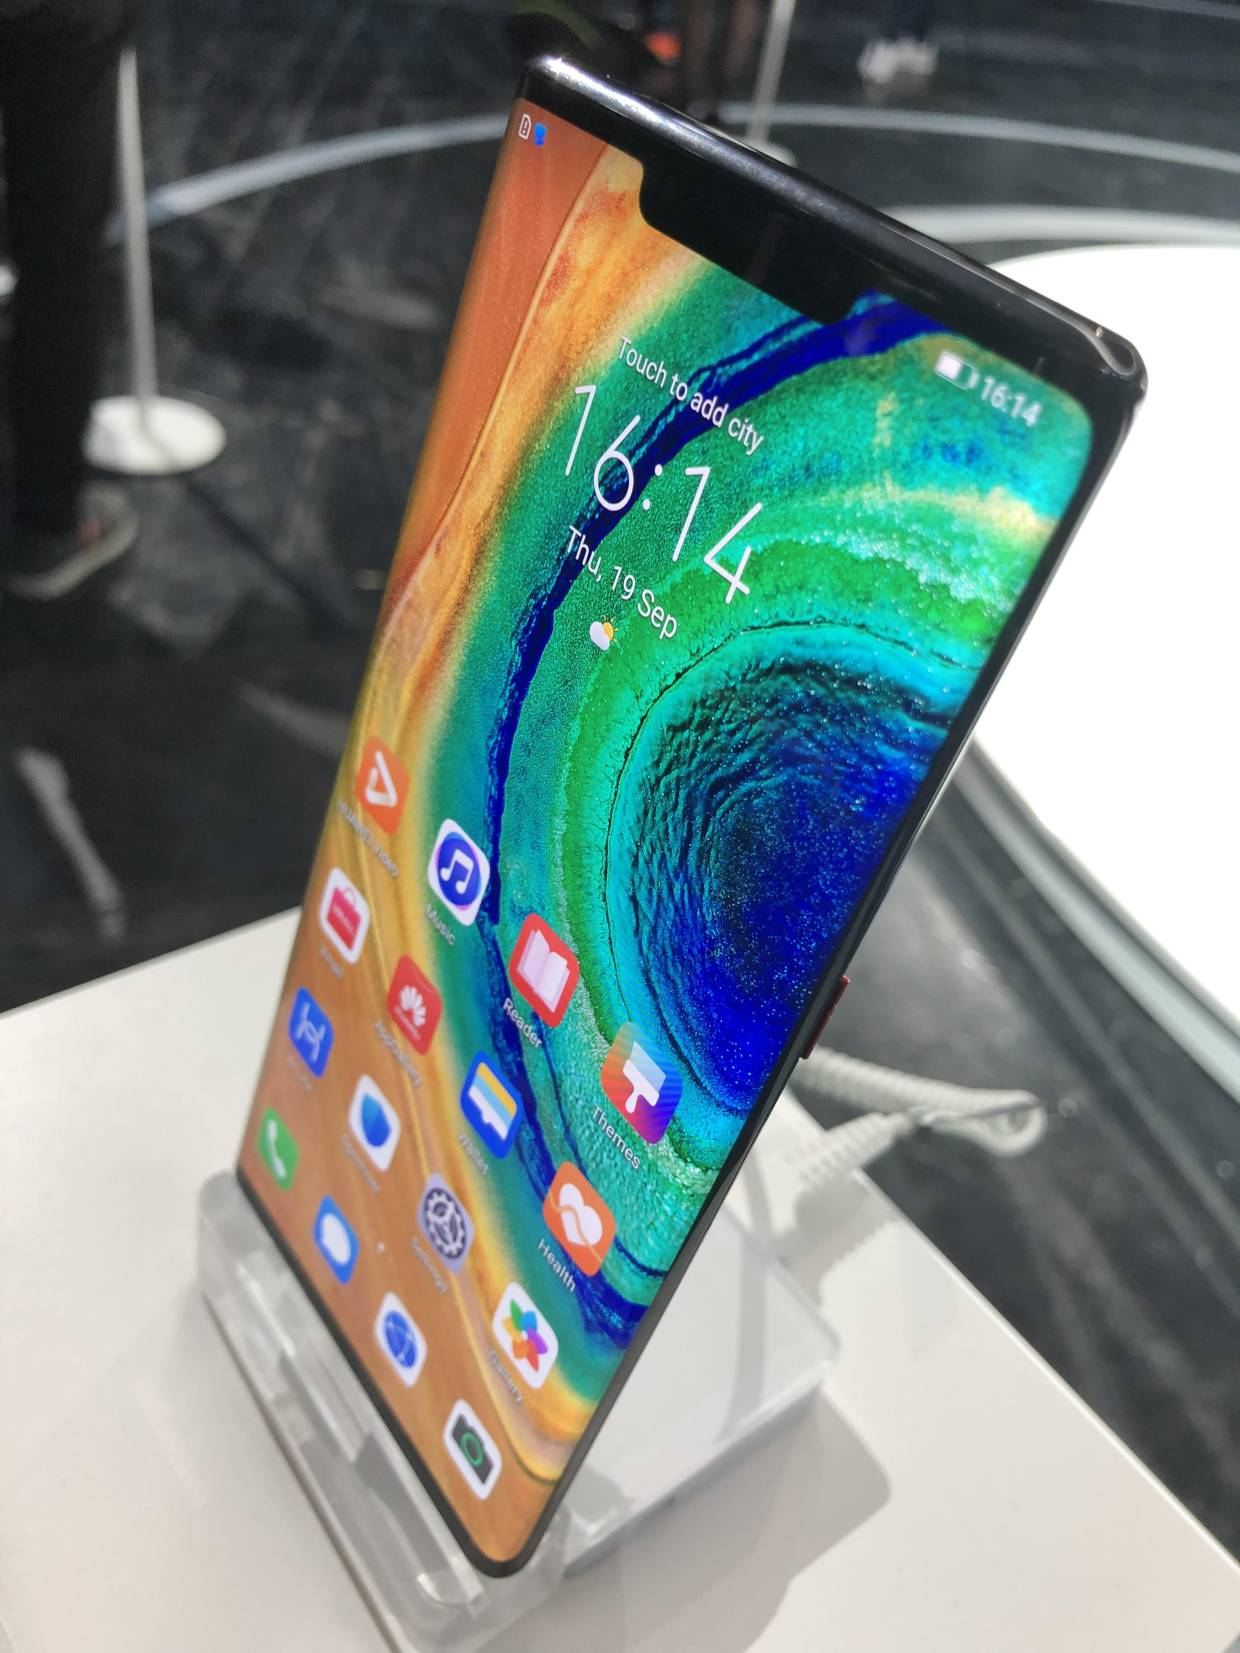 Huawei has eliminated the side volume buttons and replaced them with virtual ones on the Mate 30 Pro (pic) and Mate 30.